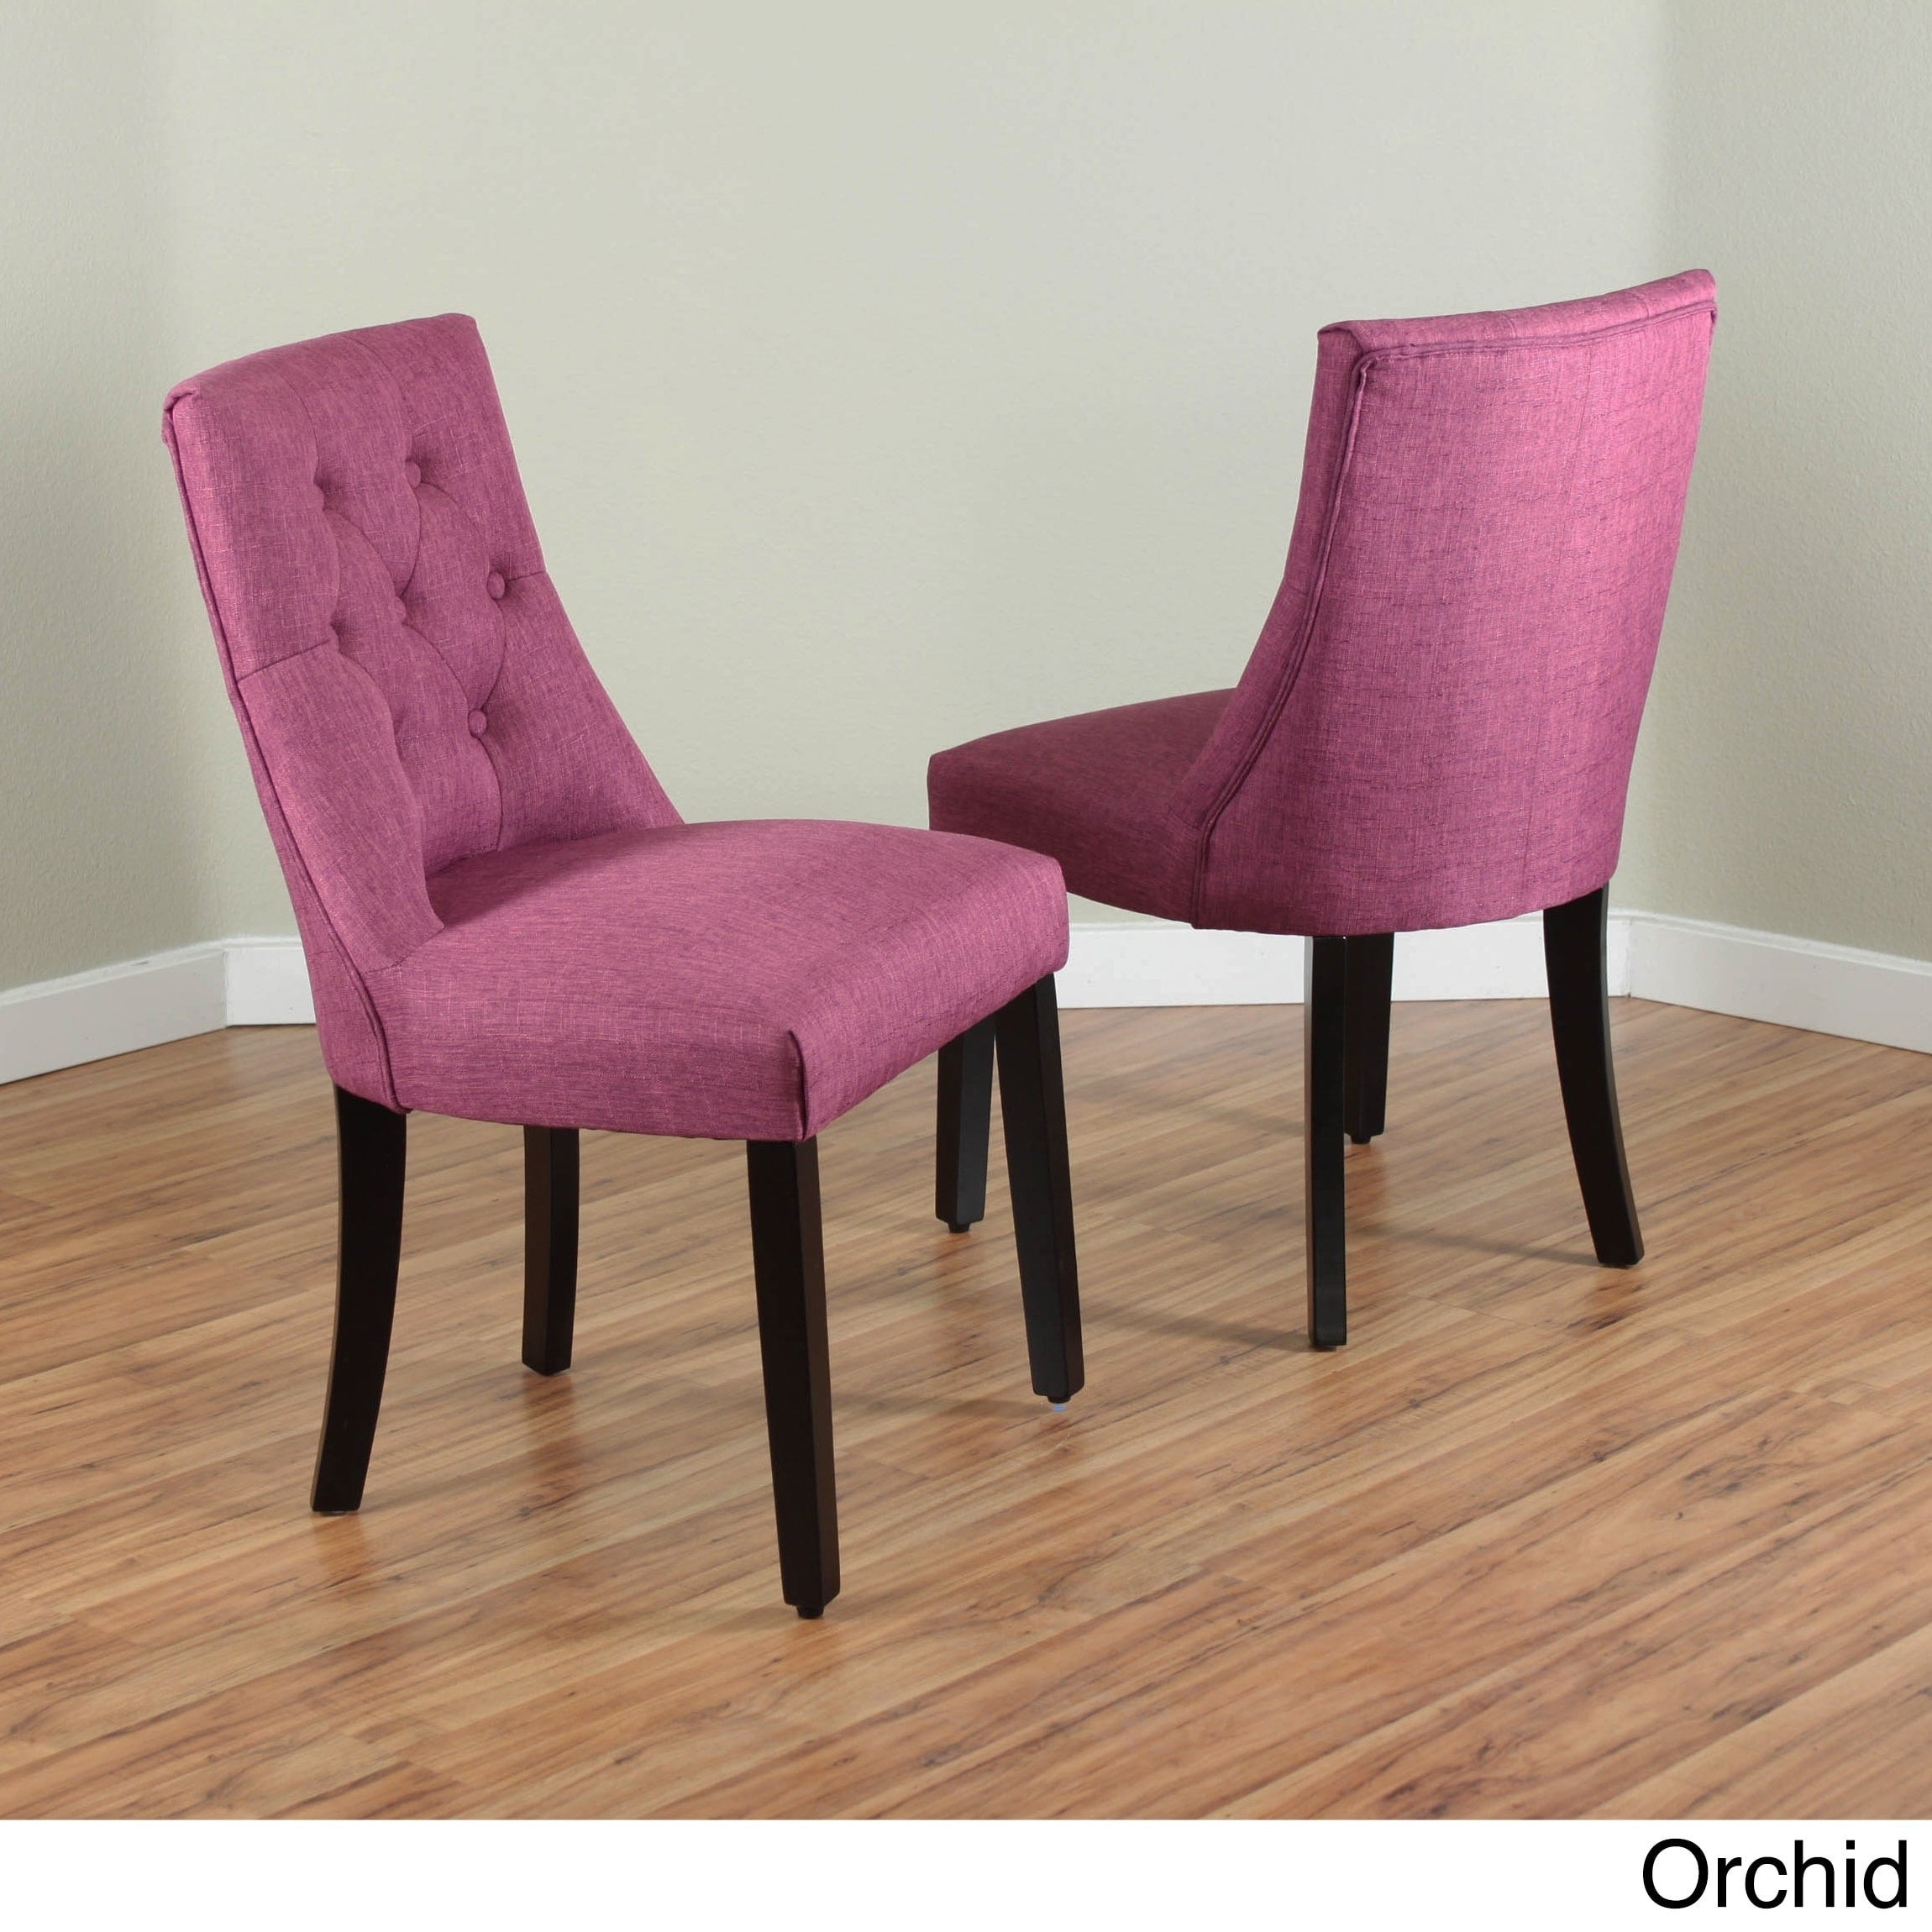 Fabulous Bellcrest Upholstered Espresso Dining Chairs (Set of 2) - Free  TY27